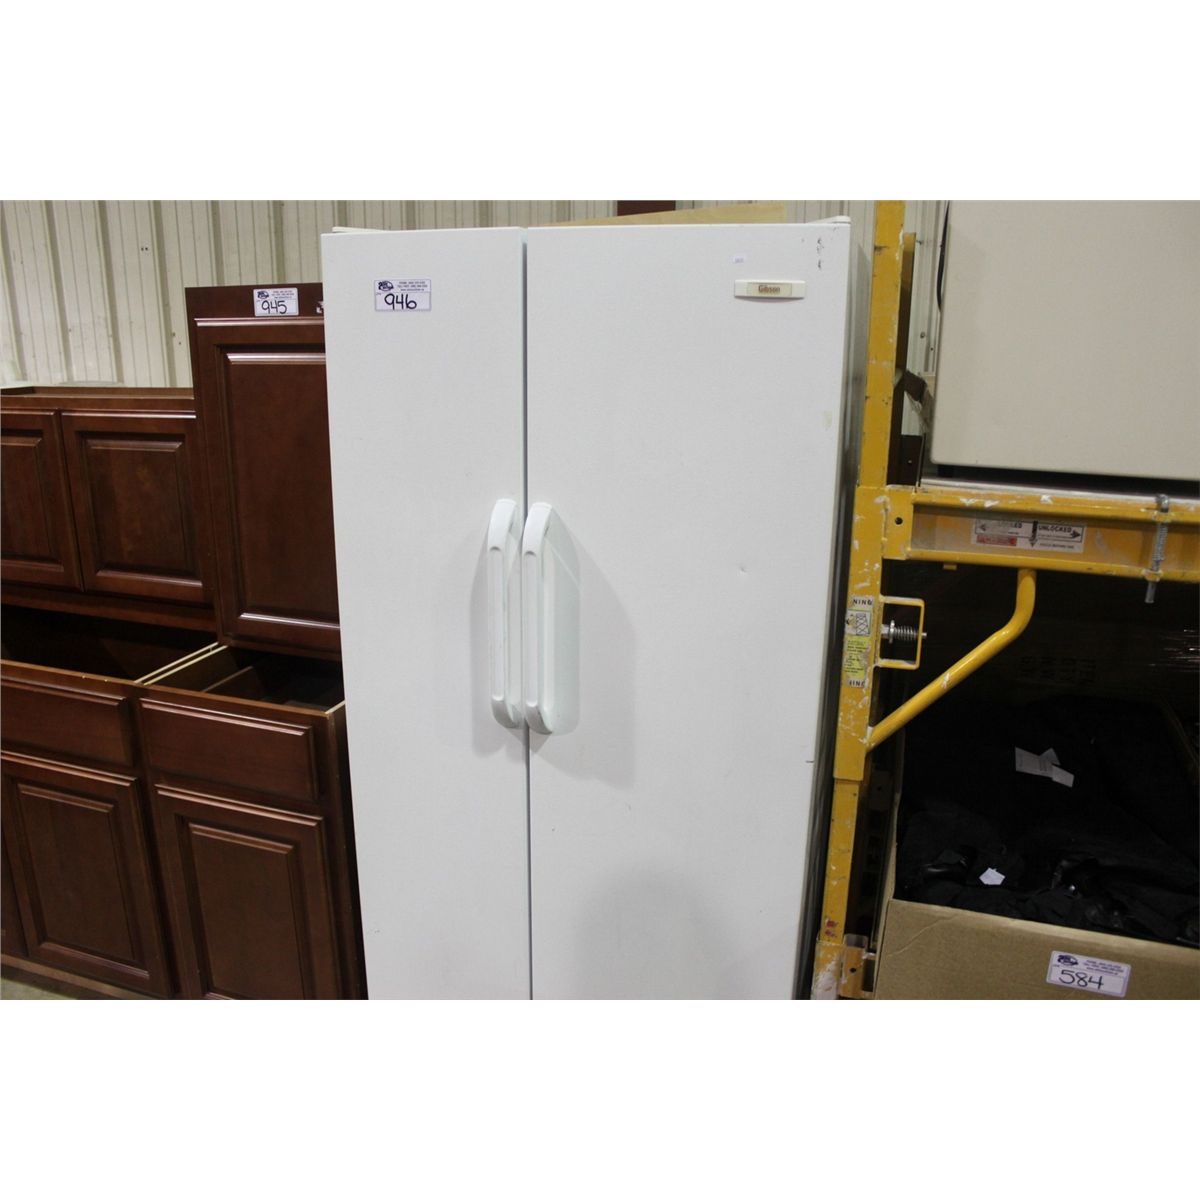 GIBSON SIDE BY SIDE REFRIGERATOR